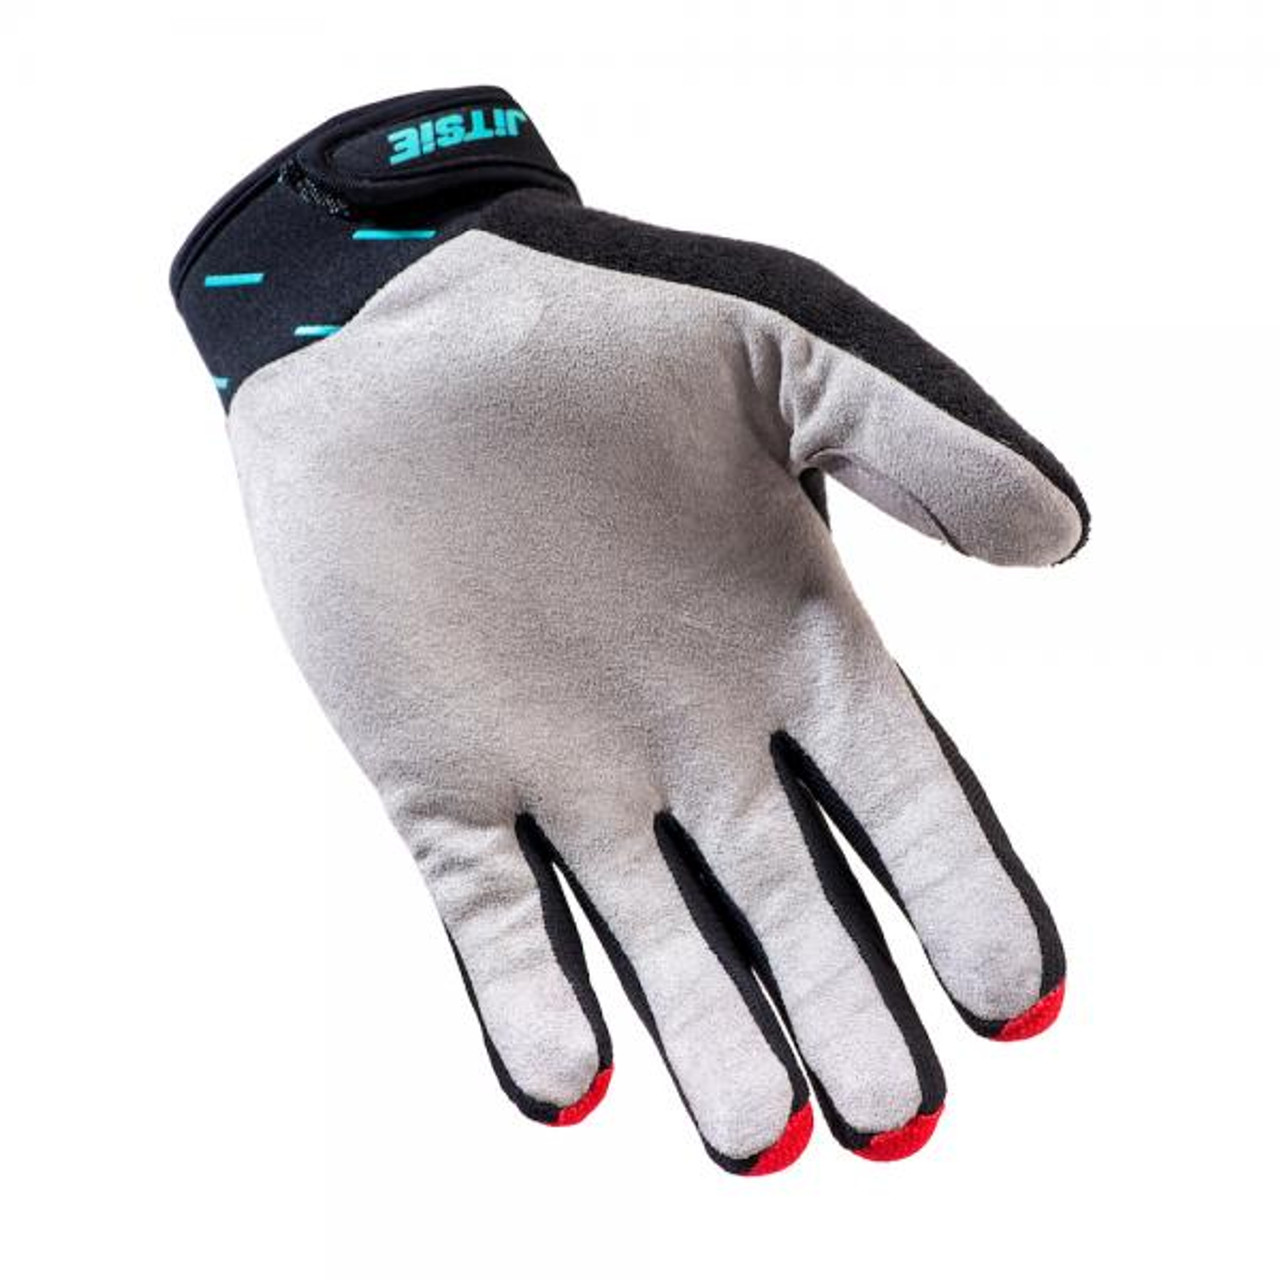 Gloves Domino, black/ red/teal